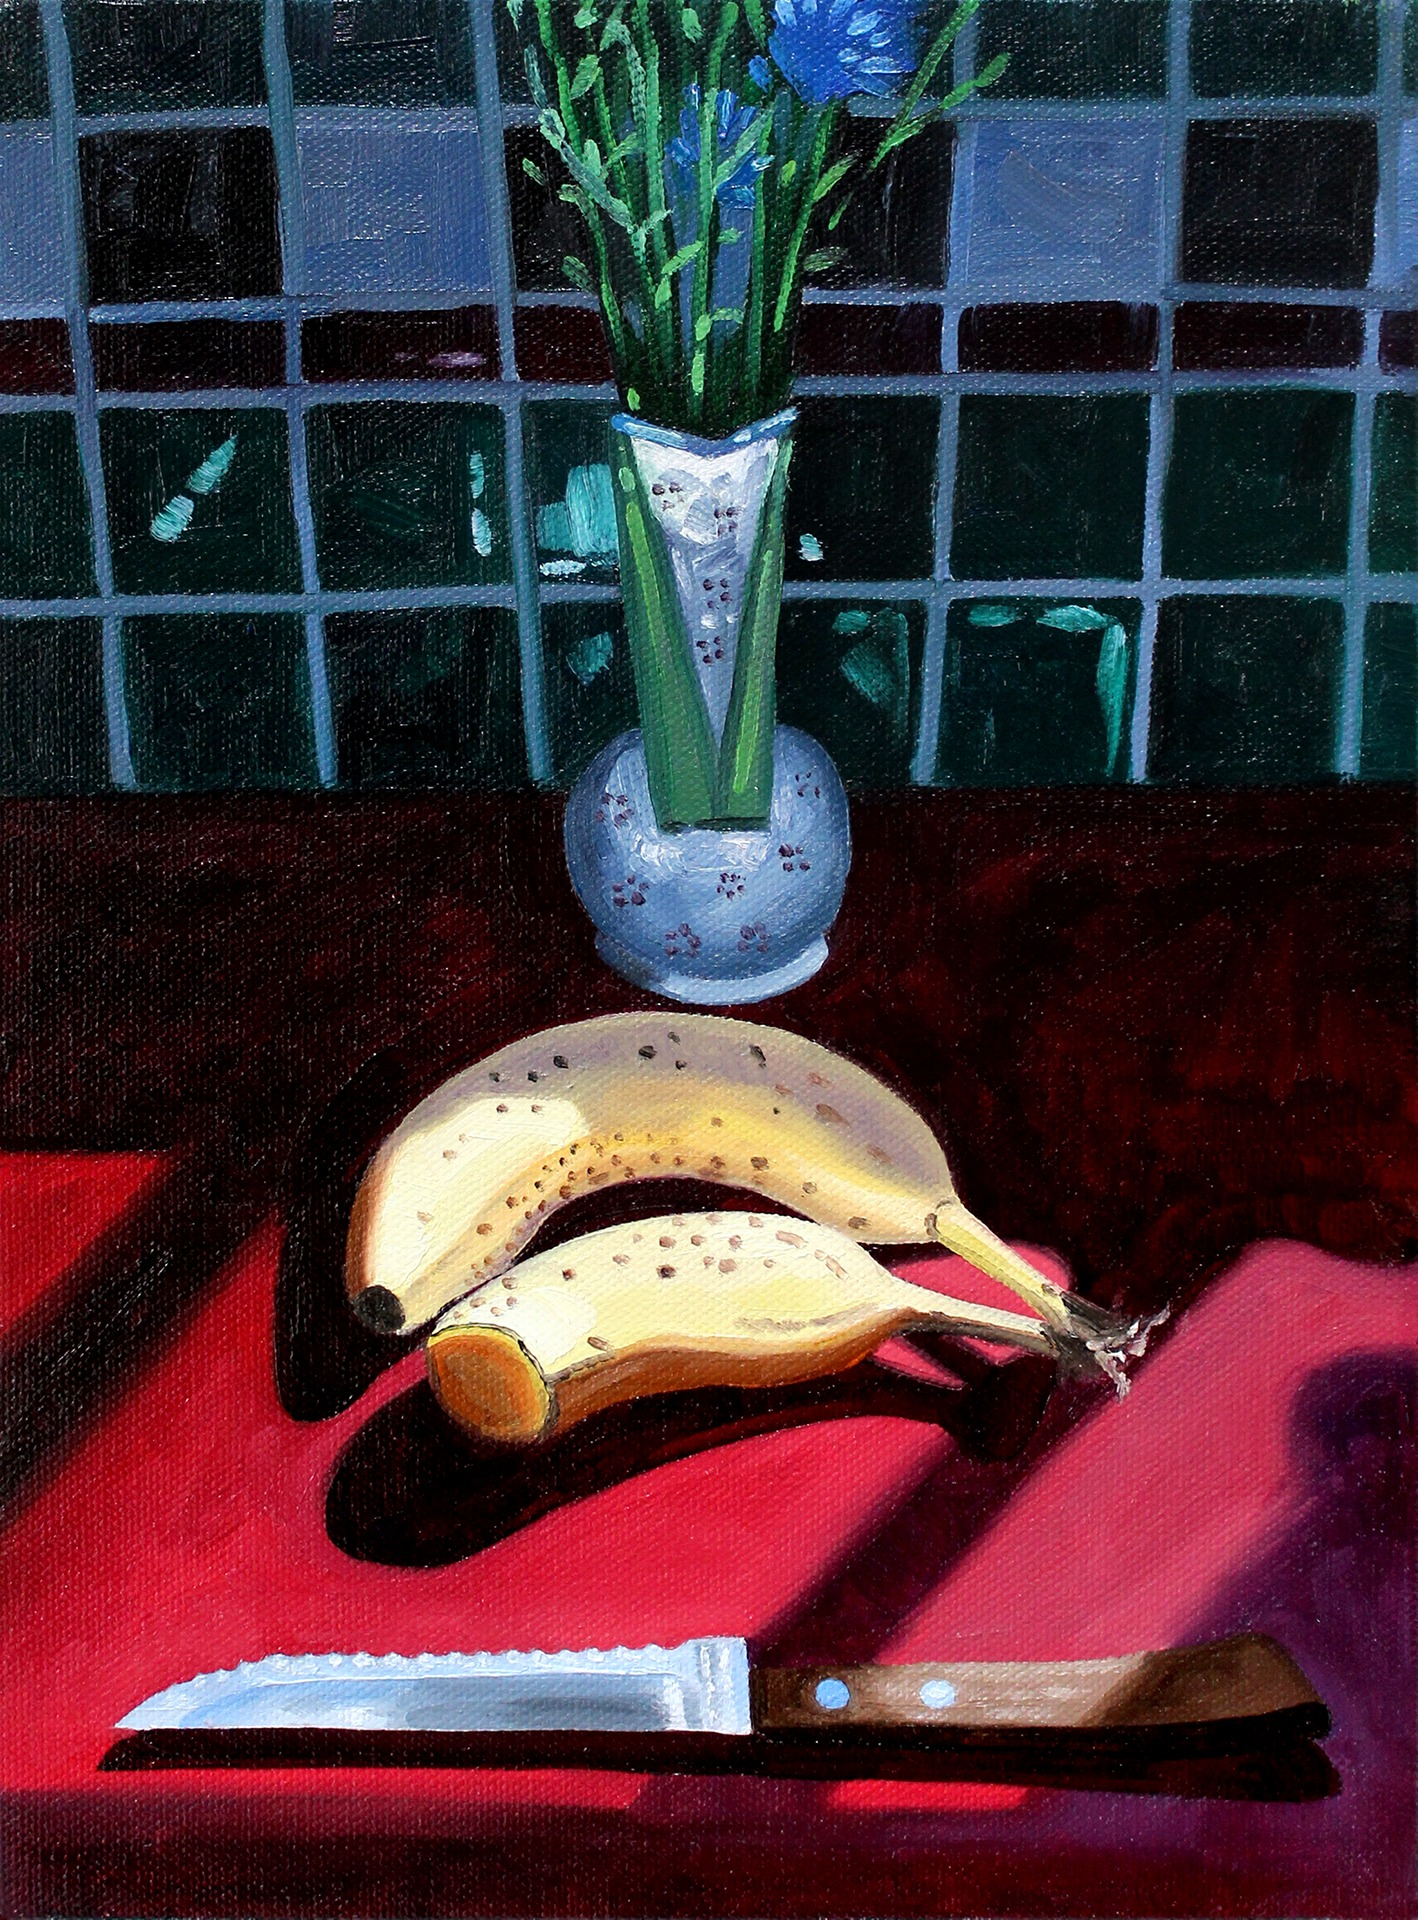 A painting by Lina Tharsing titled Sliced, dated 2020.